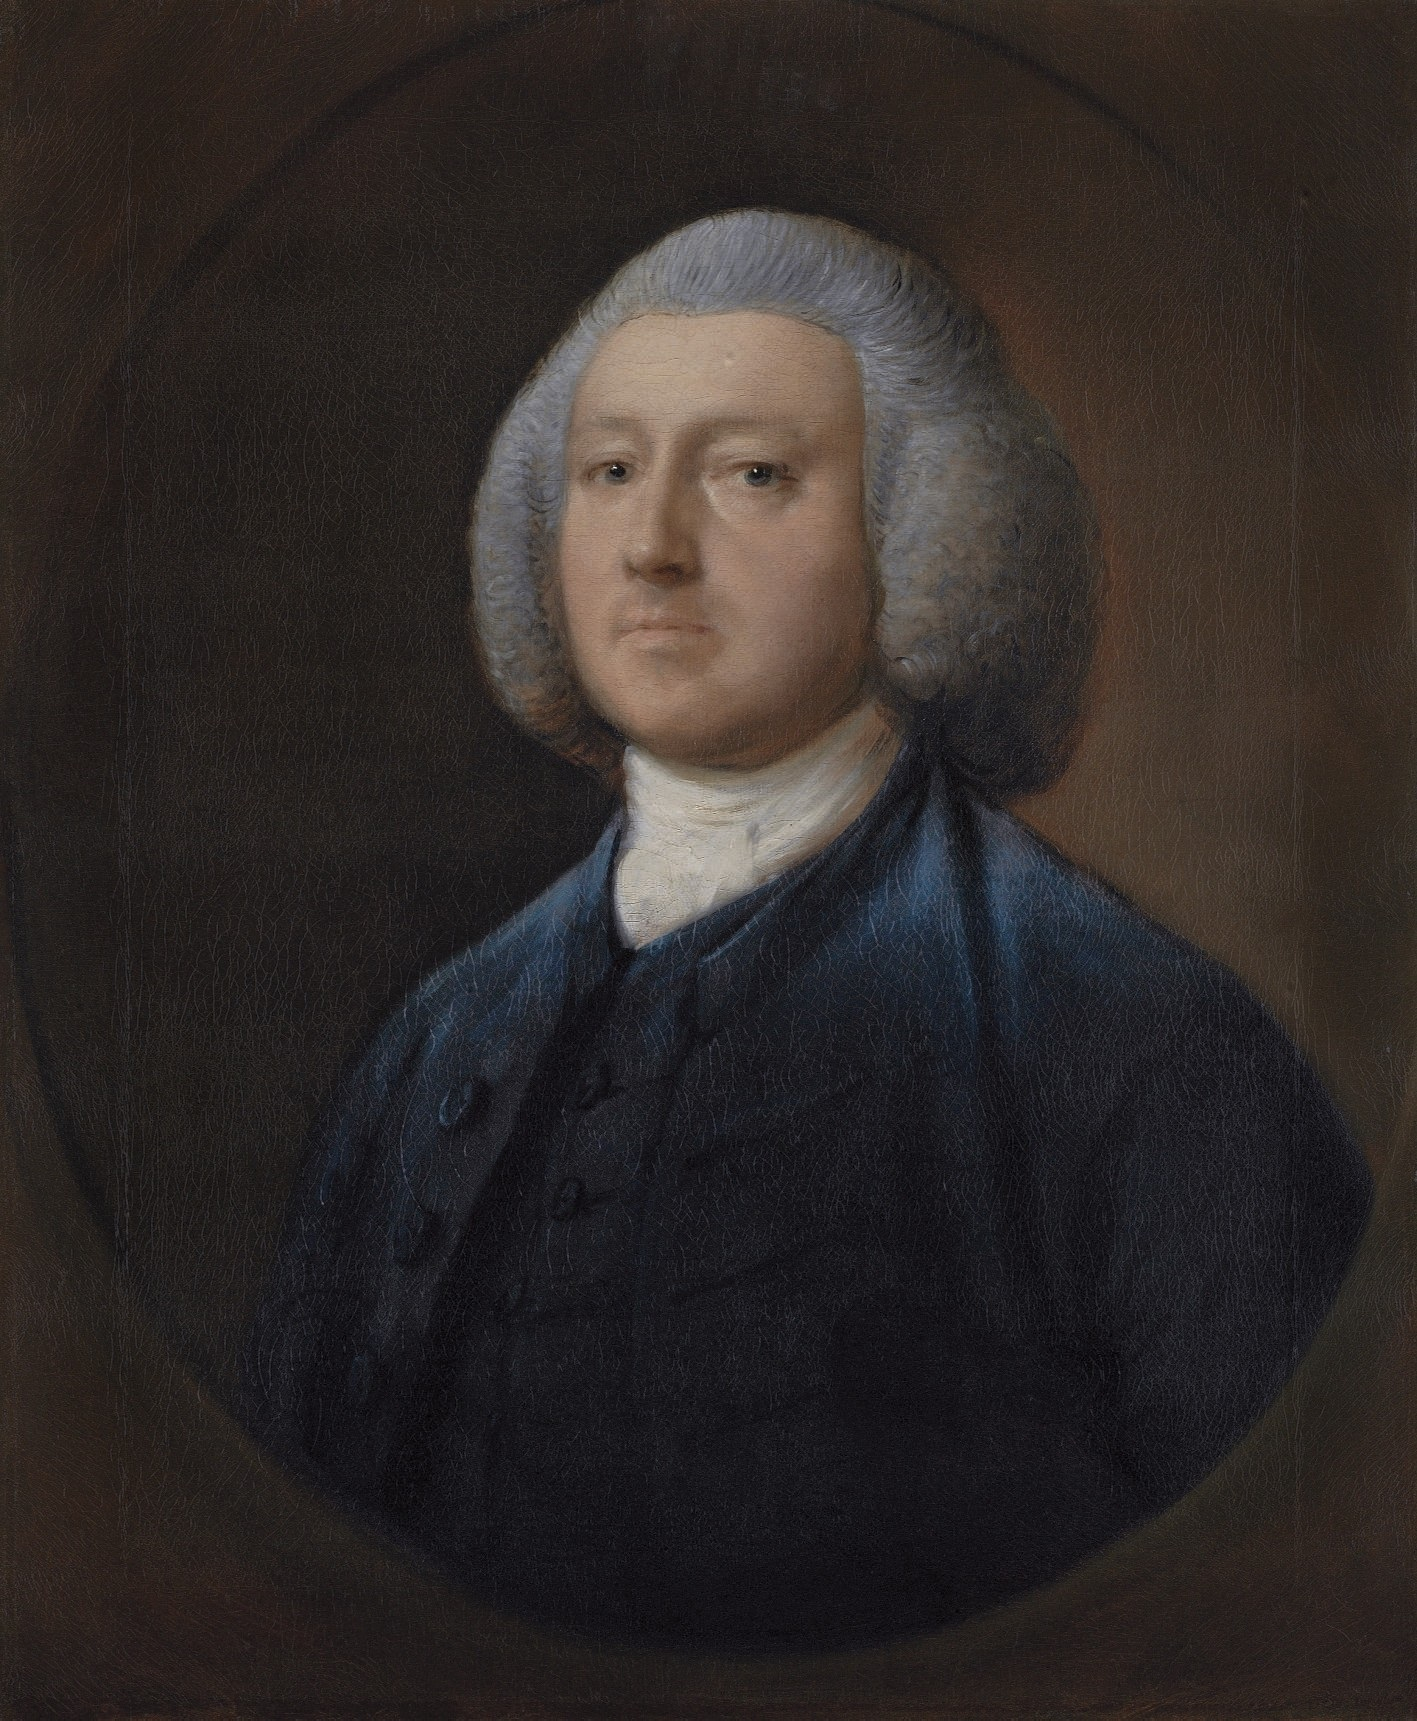 short biography thomas gainsborough Artist page for thomas gainsborough (1727-1788) the portrait and landscape painter thomas gainsborough was born at sudbury, suffolk, the fifth son of a cloth merchant he was apprenticed at the age of thirteen to a london silversmith, and was taught by hubert gravelot, a french book-illustrator.